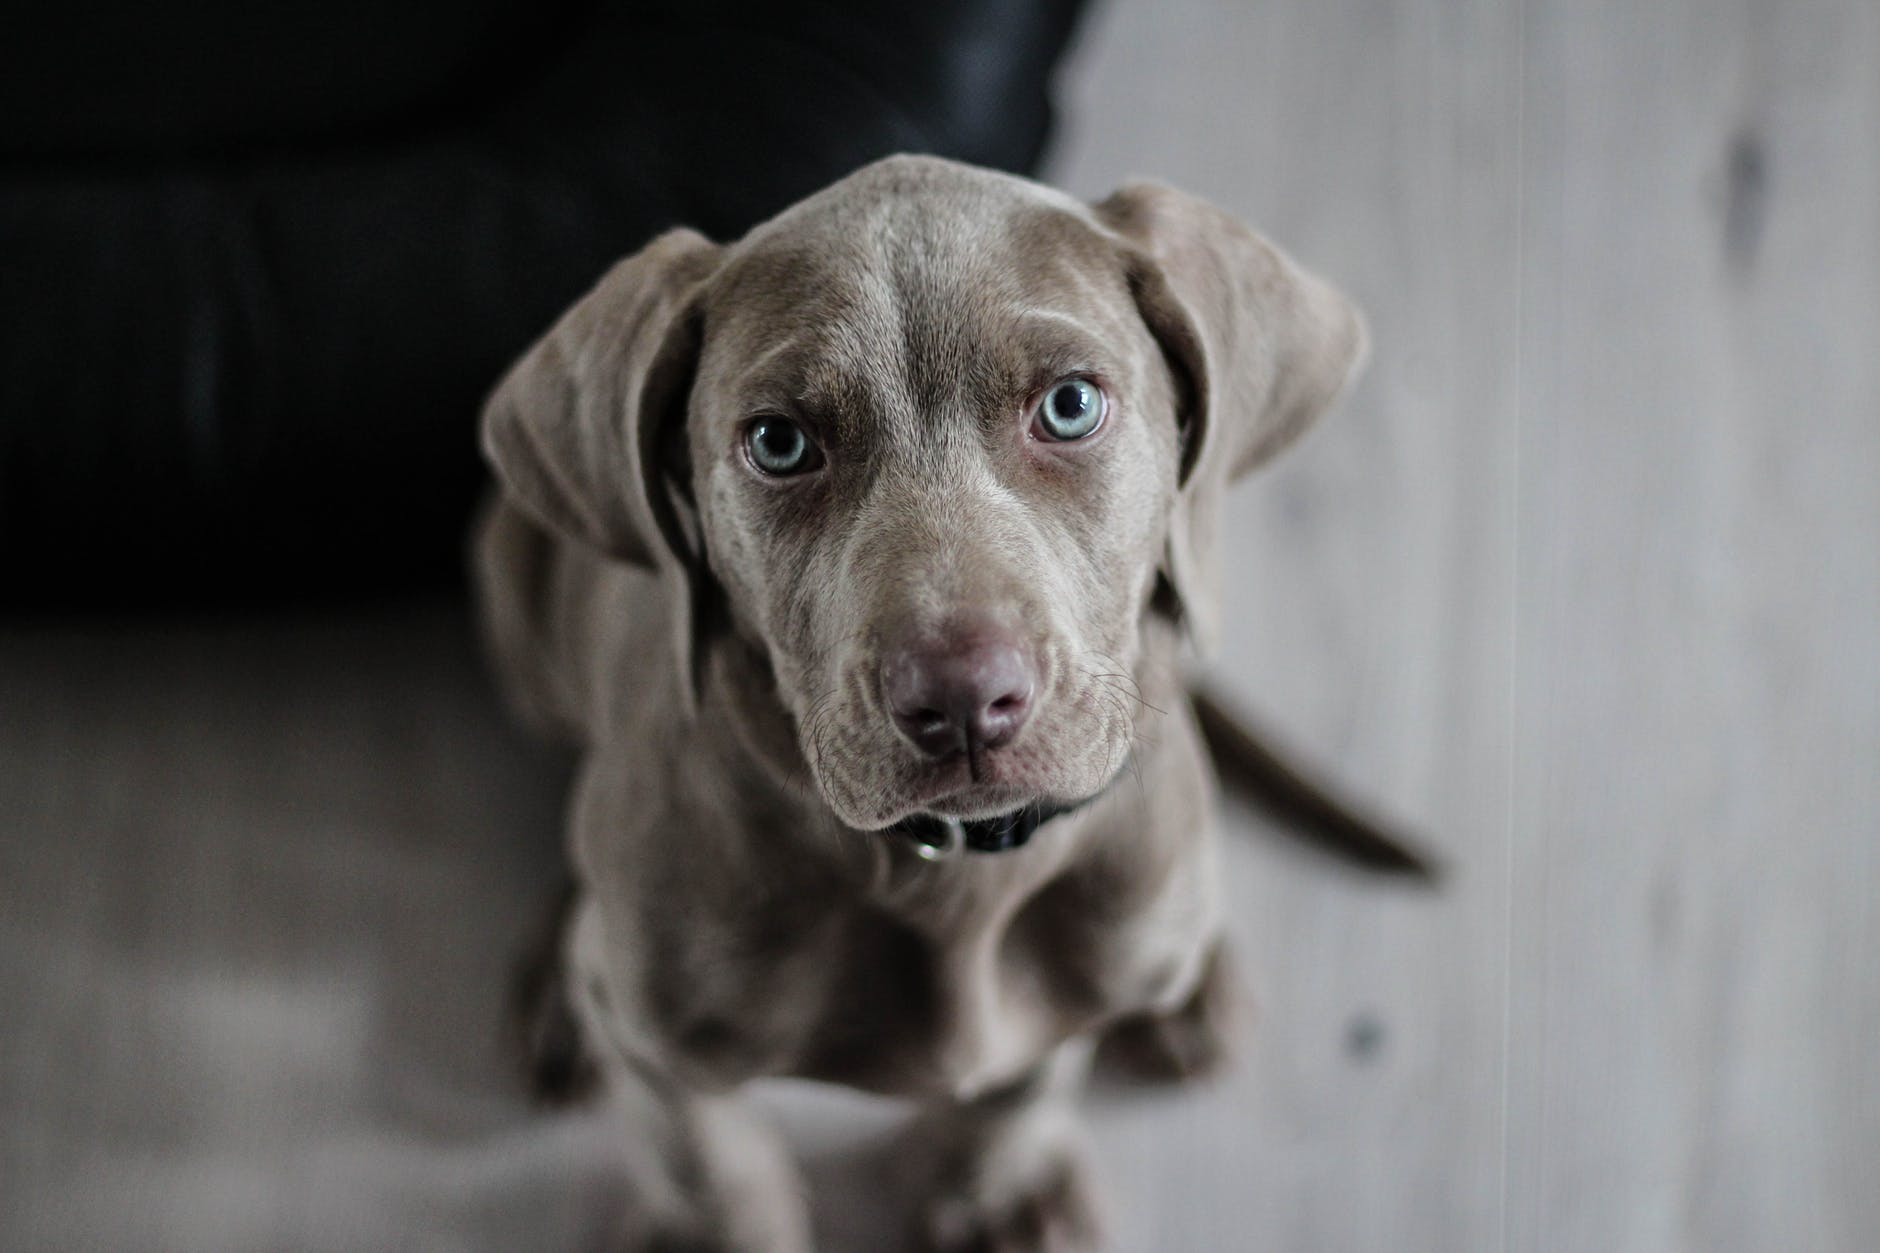 weimaraner-puppy-dog-snout-97082.jpeg